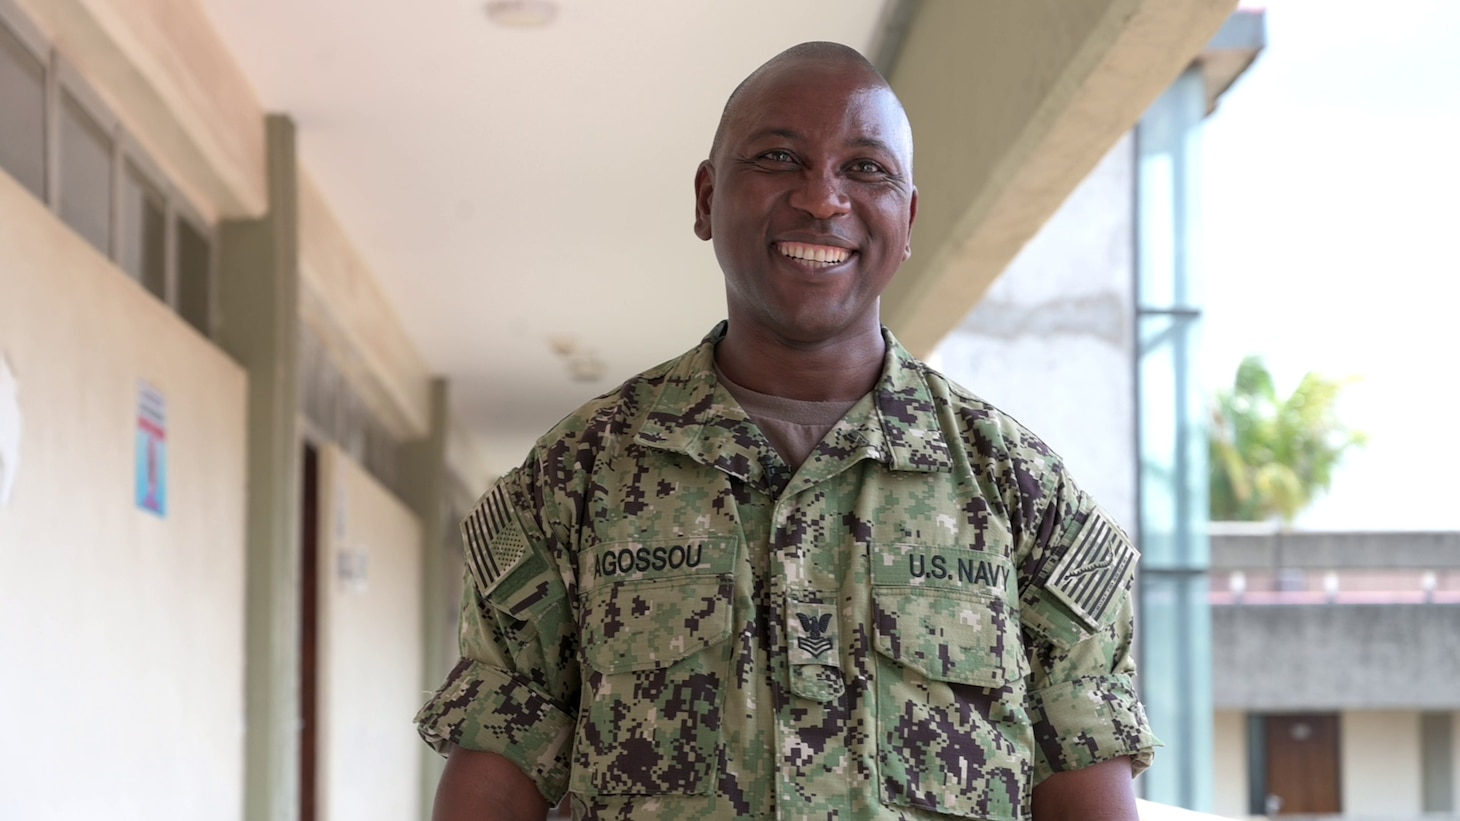 (Aug. 2, 2021) Hospital Corpsman 1st Class Marcelin Aggossou poses for a portrait during exercise Cutlass Express 2021 in East Africa, Aug. 2, 2021. Cutlass Express is designed to improve regional cooperation, maritime domain awareness and information sharing practices to increase capabilities between the U.S., East African and Western Indian Ocean nations to counter illicit maritime activity.